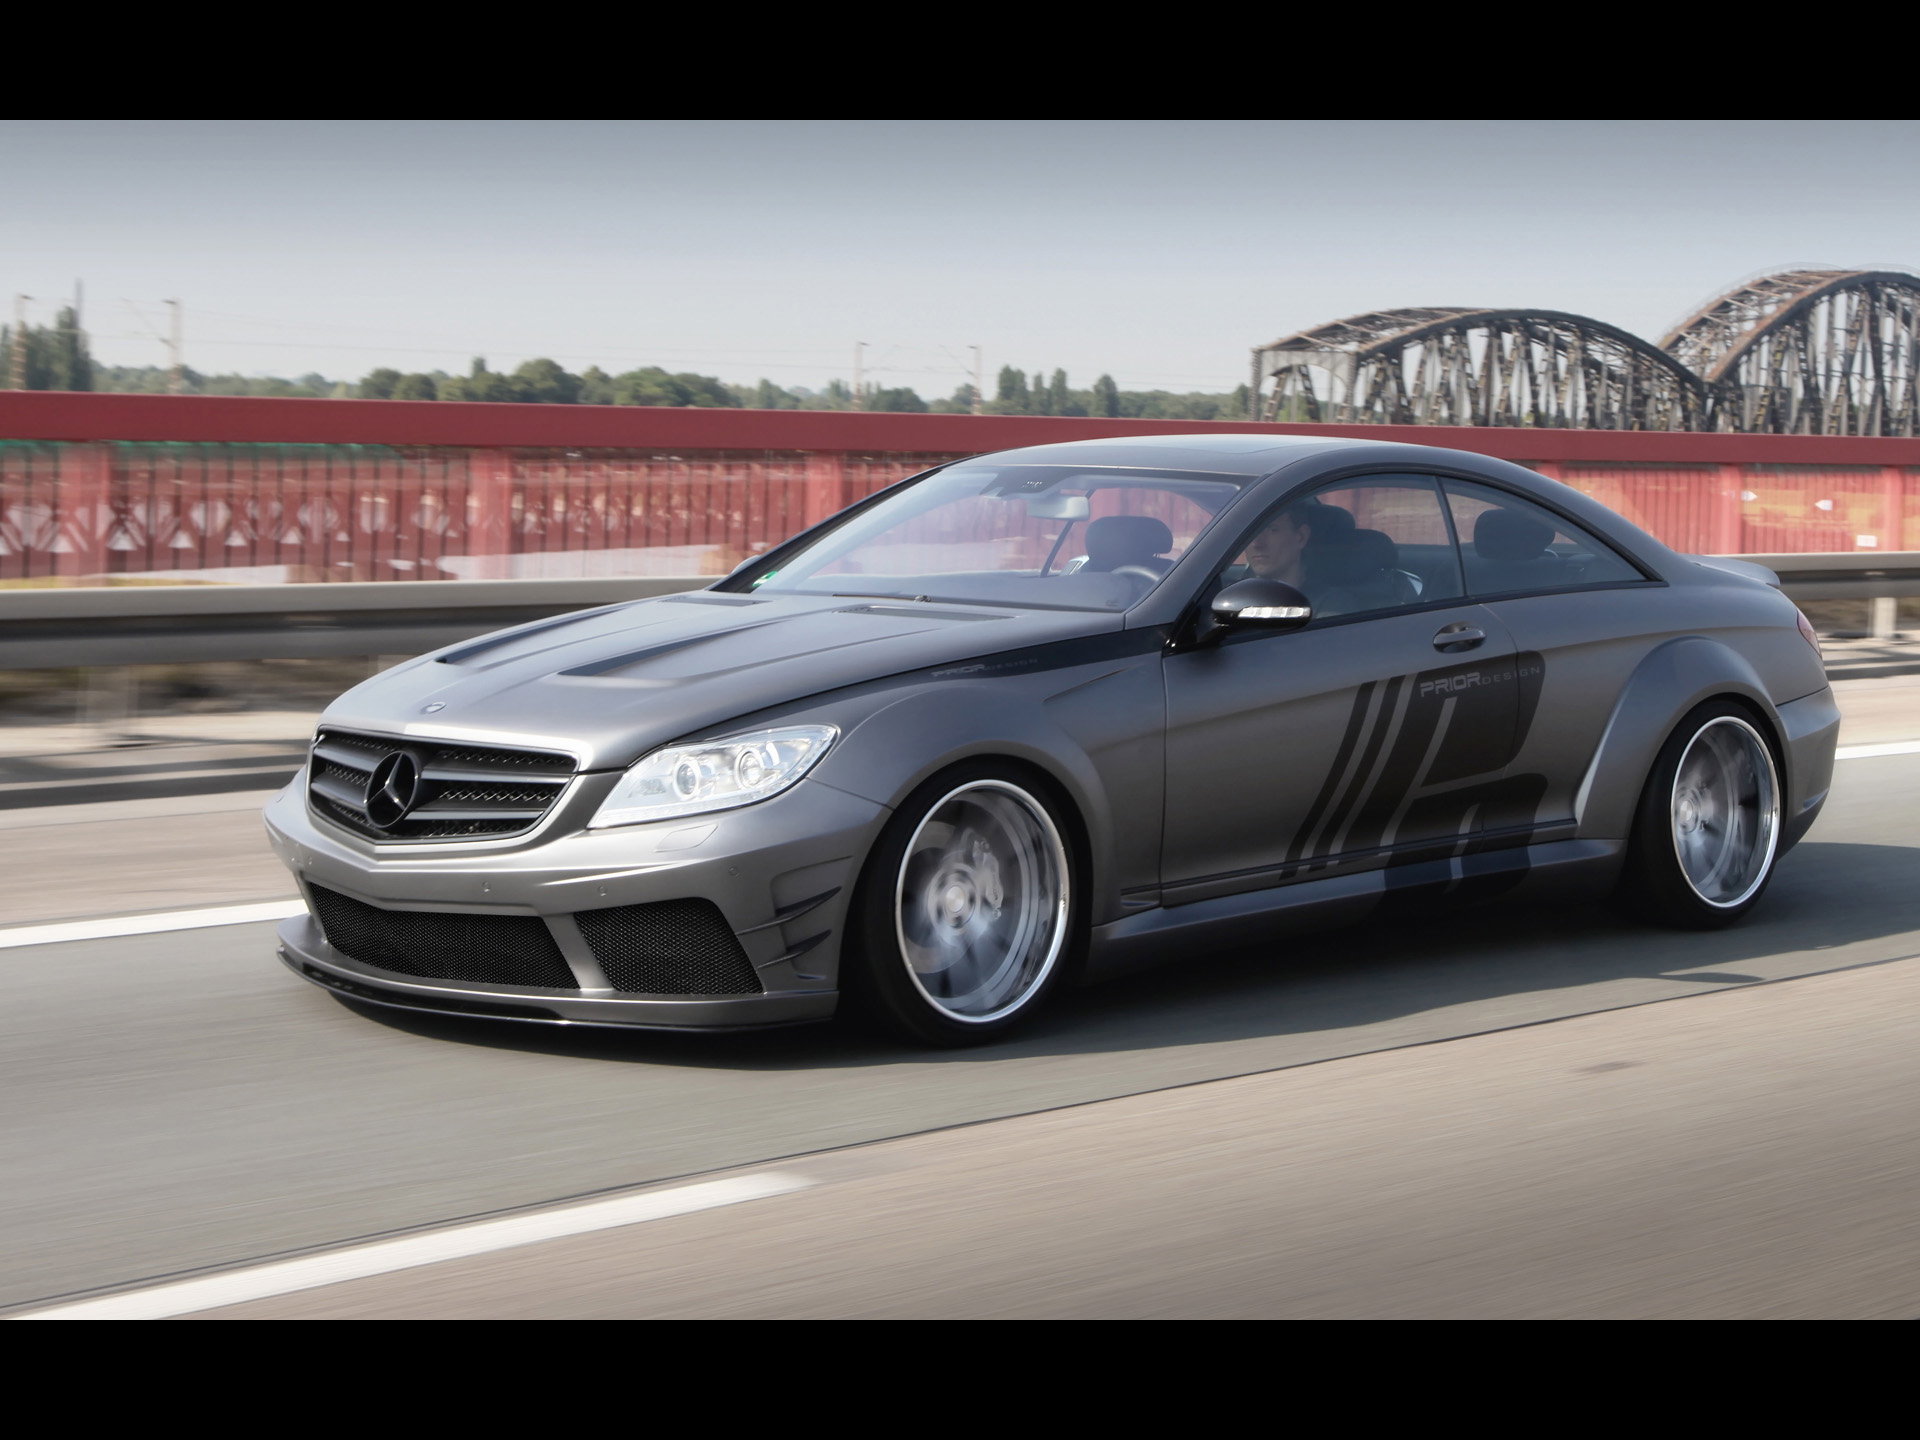 2019 Brabus Mercedes Benz CL Coupe photo - 1